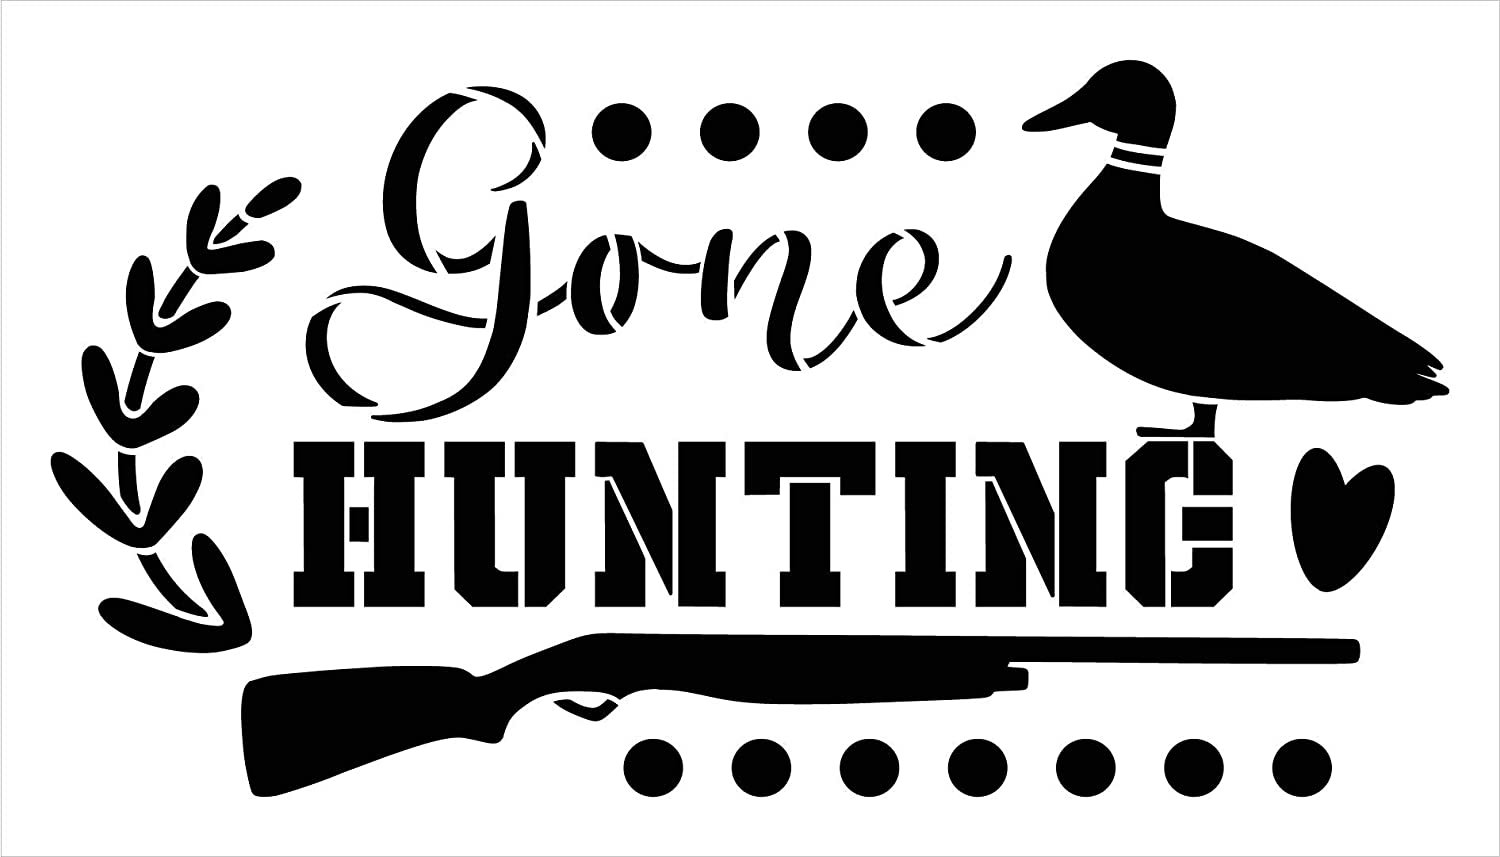 Gone Hunting Stencil with Duck by StudioR12   DIY Country Cabin Home Decor   Craft & Paint Wood Sign   Mylar Template   Select Size